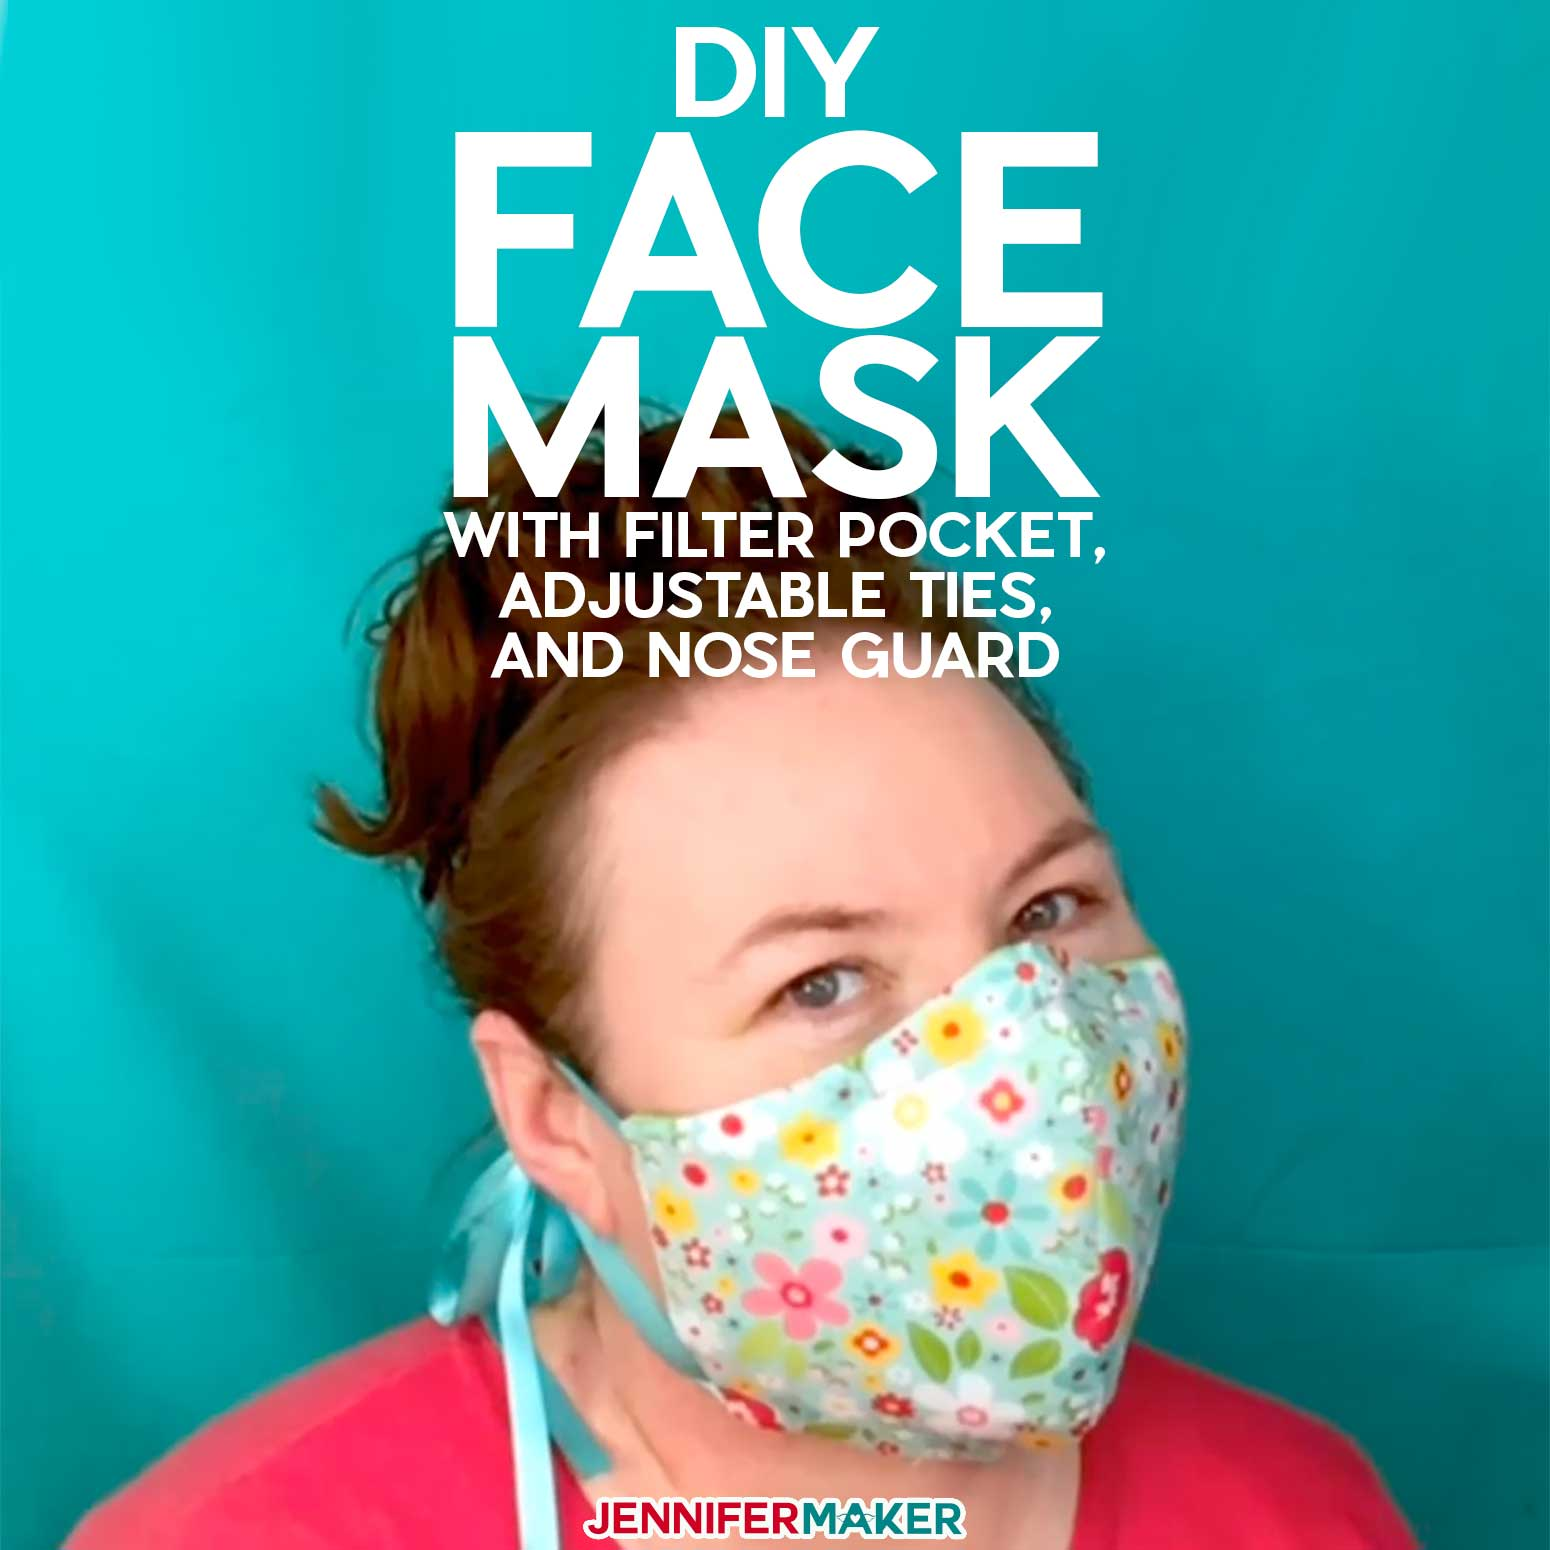 Diy Face Mask Patterns Filter Pocket Adjustable Ties Jennifer Maker